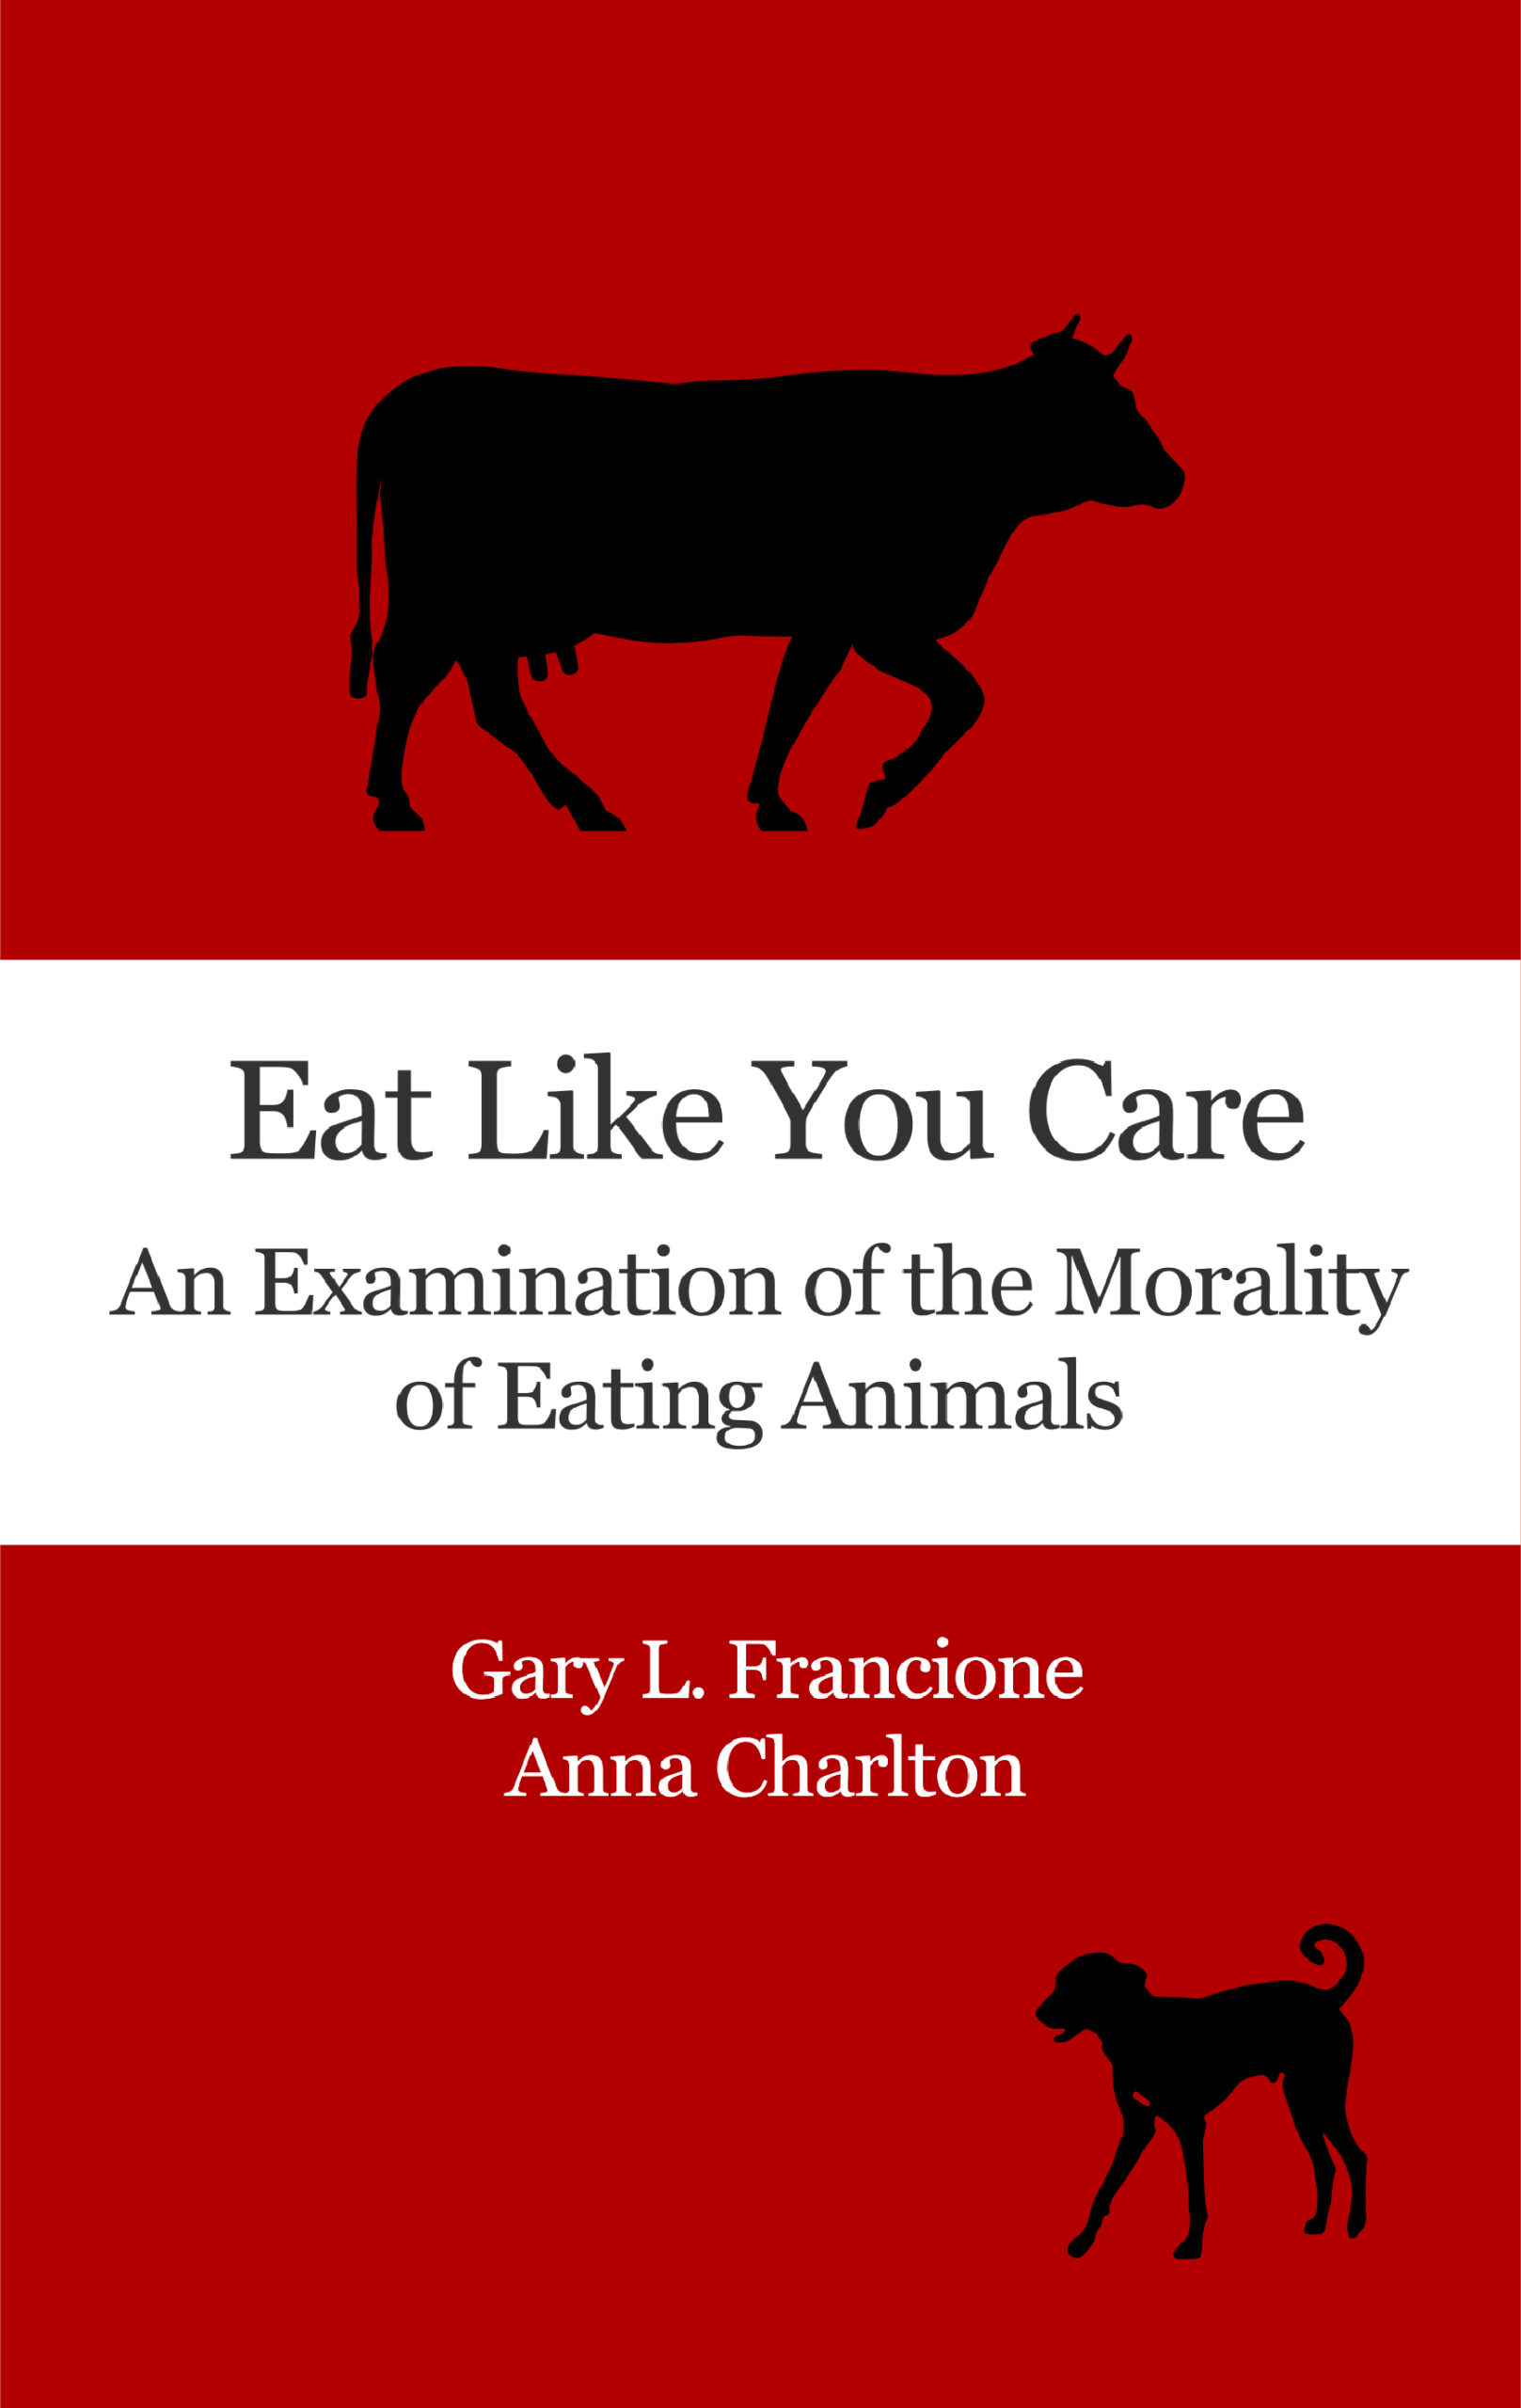 Eat Like You Care: An Examination of the Morality of Eating Animals by Gary Francione and Anna Charlton